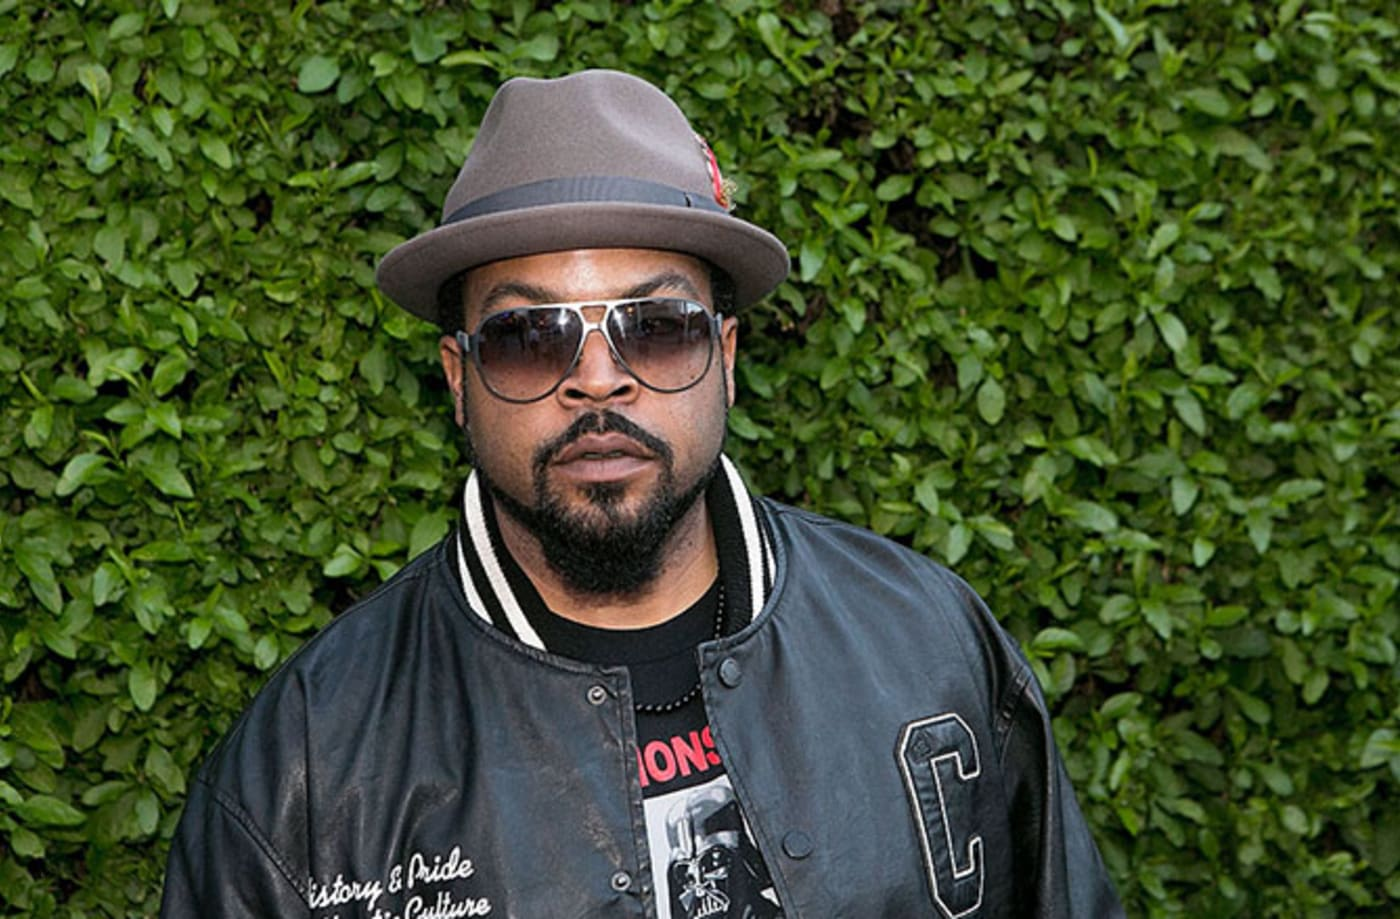 This is a photo of Ice Cube.